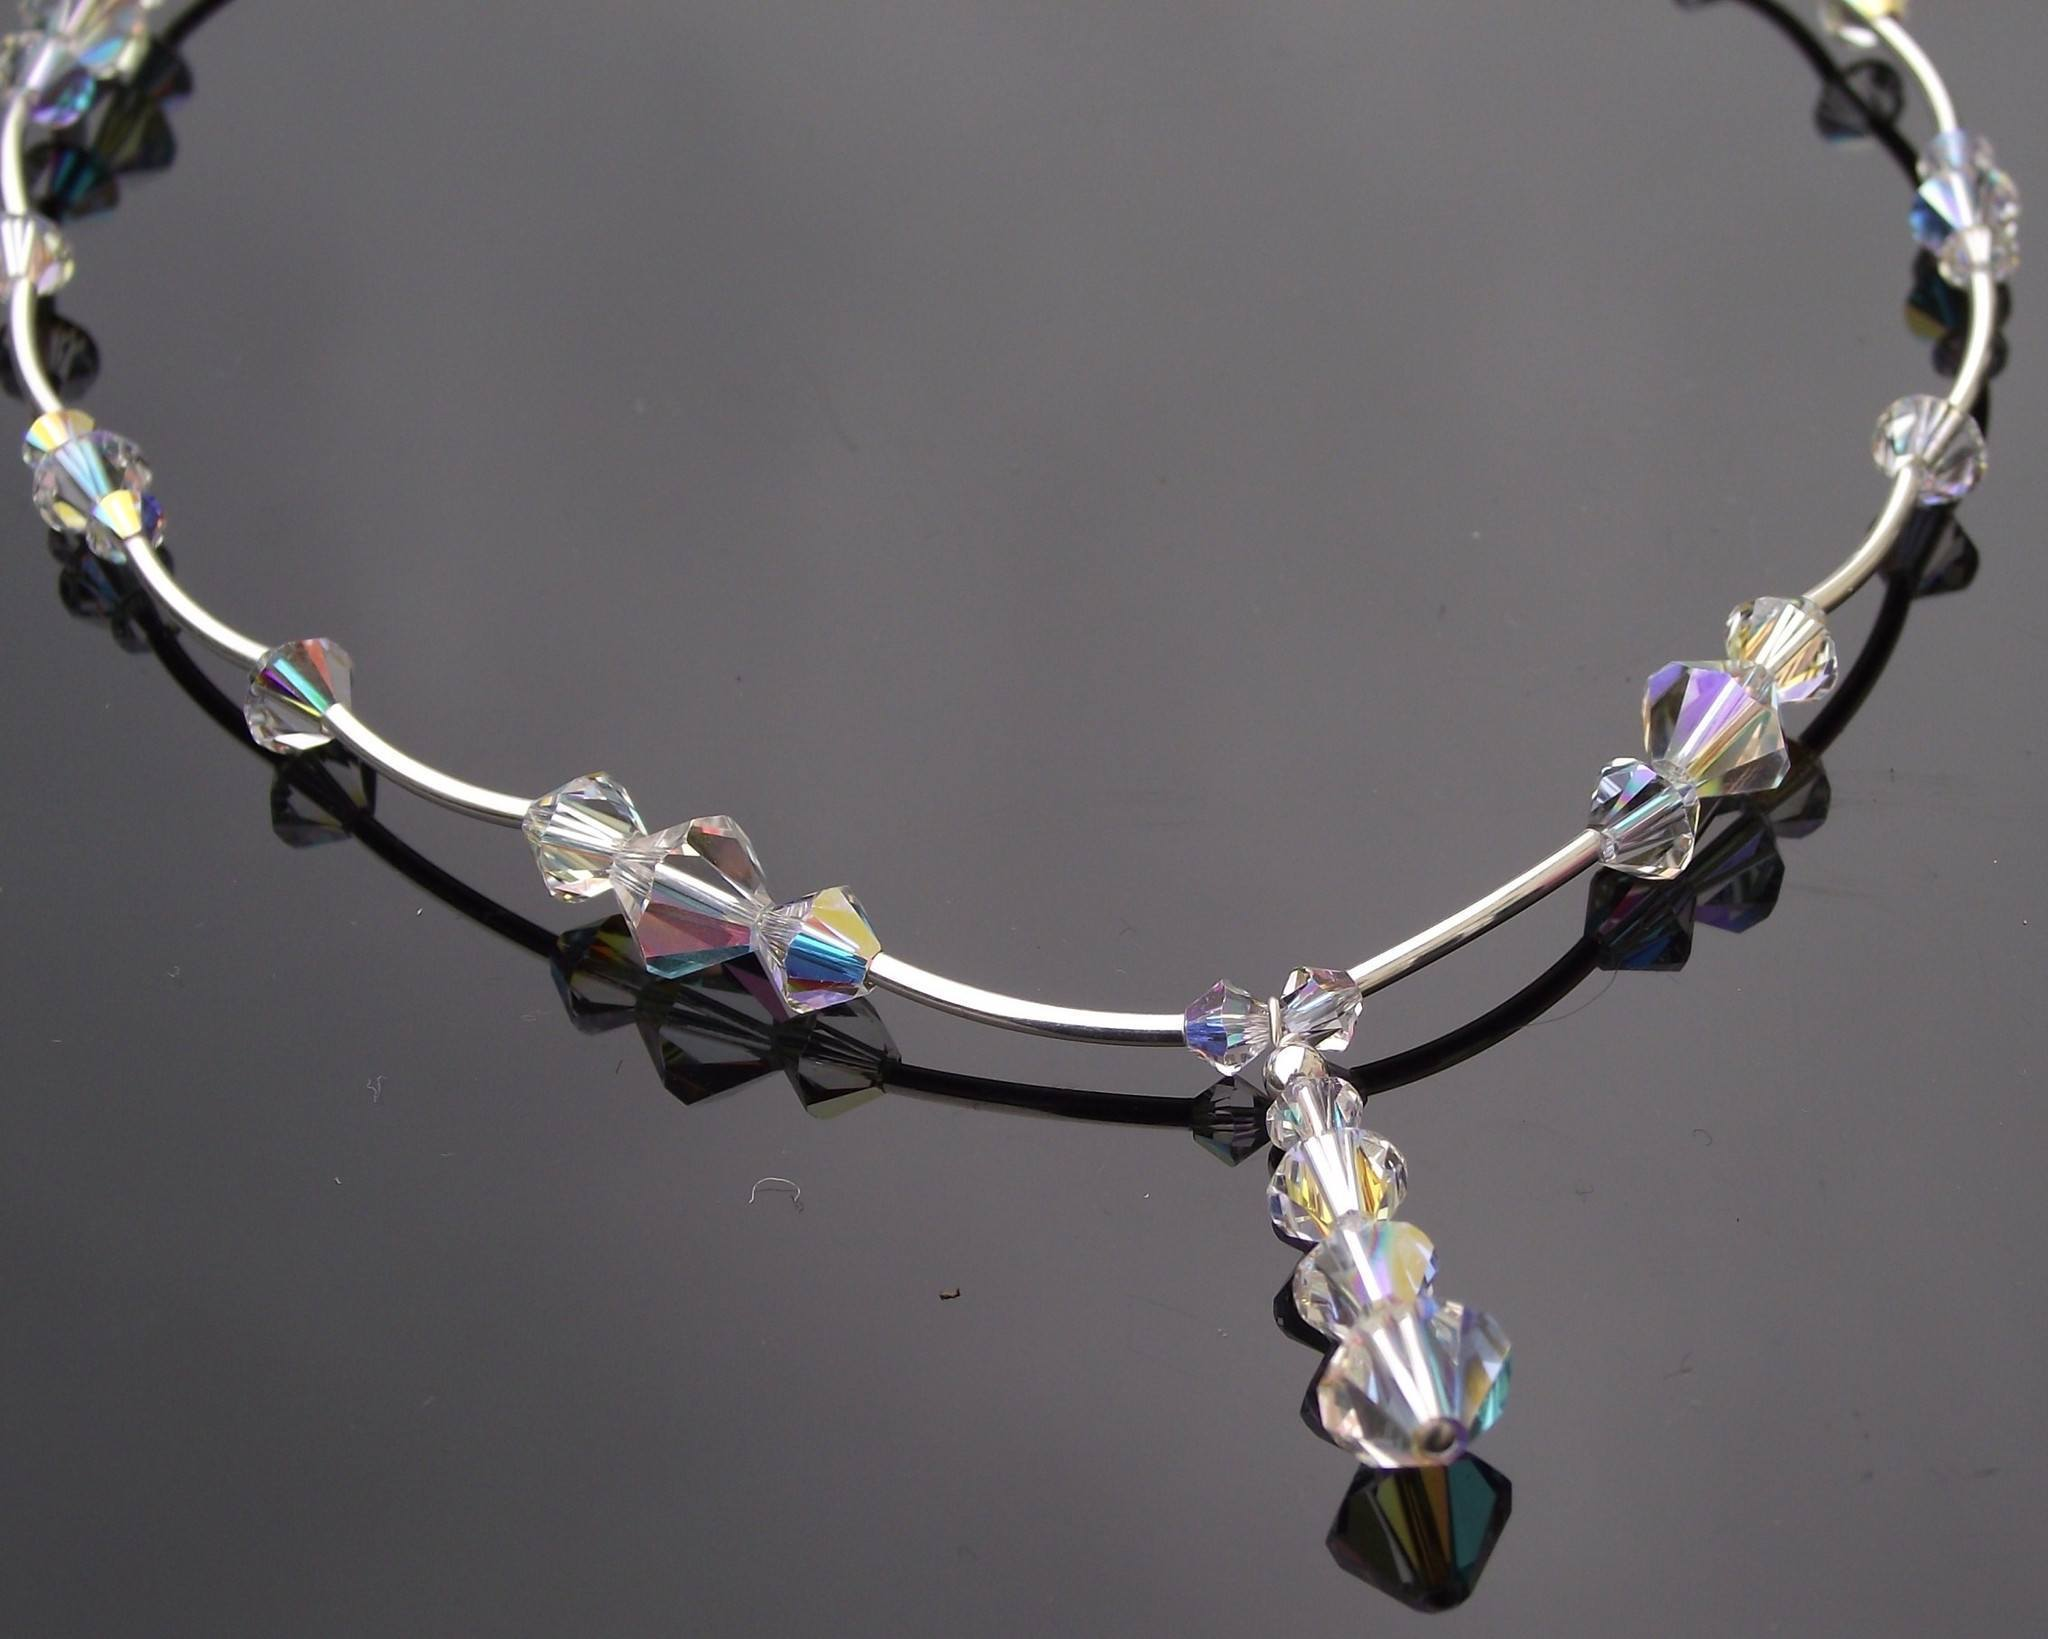 Wedding Necklace - Beautiful Swarovski Crystal Wedding Necklace, Tabitha